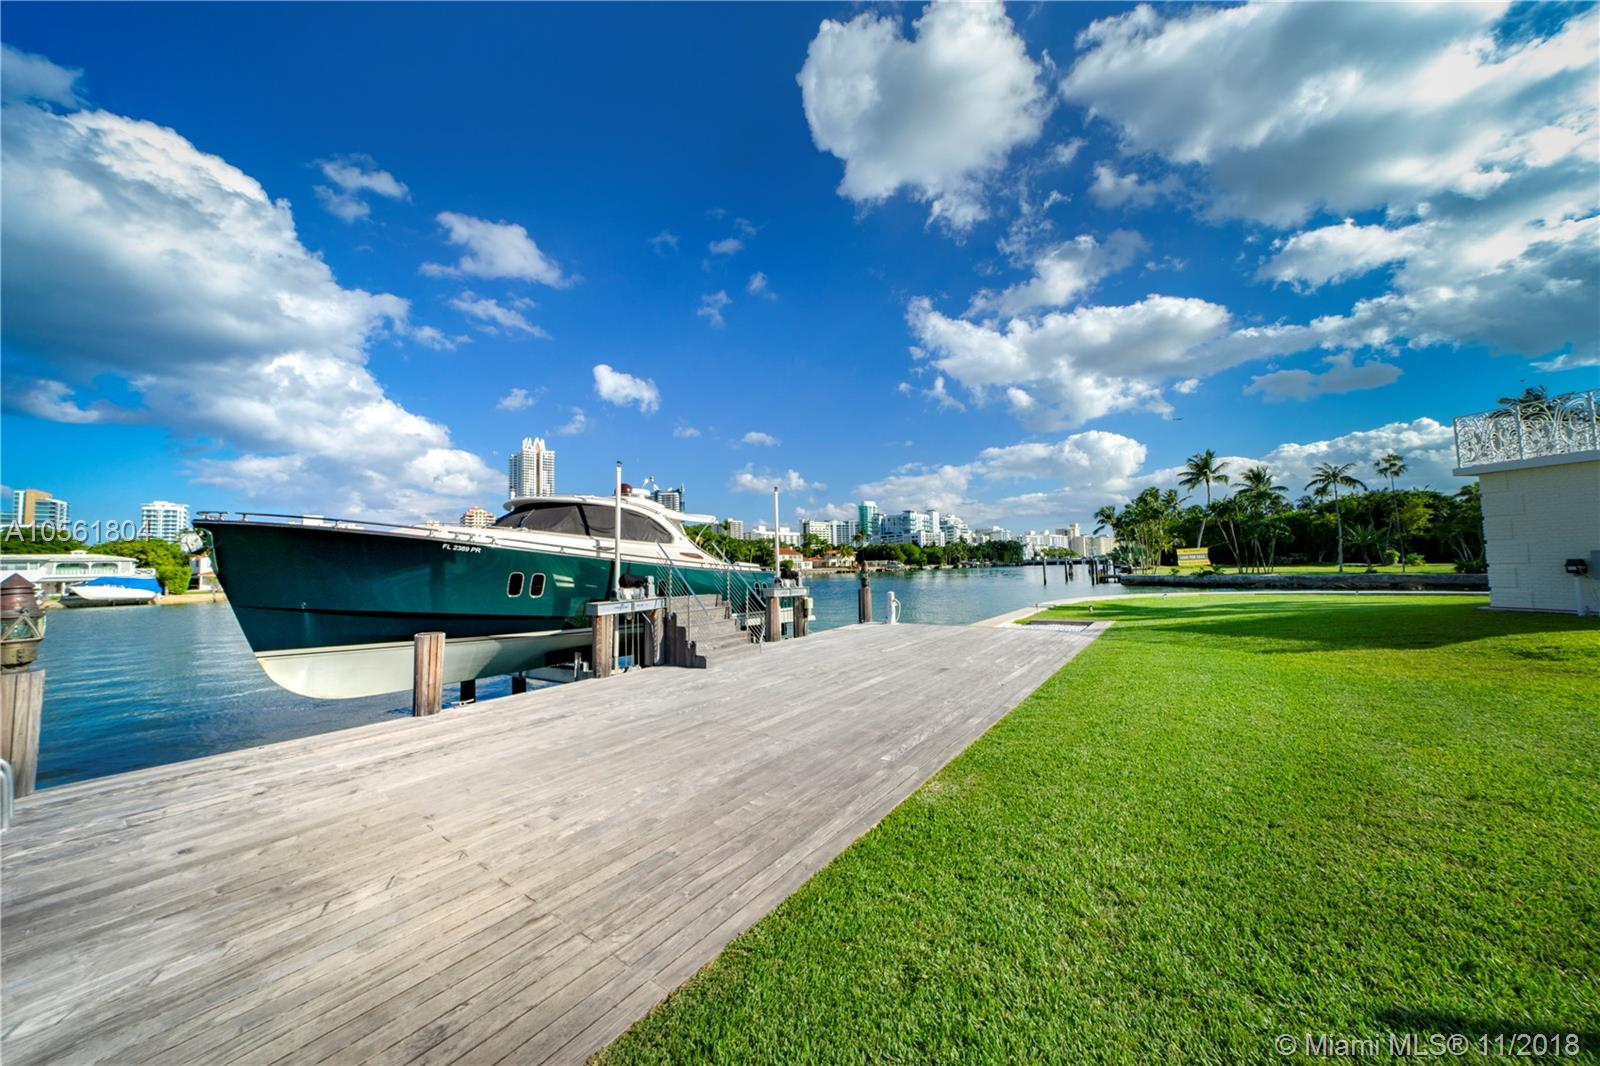 100 La gorce circle- miami-beach-fl-33141-a10561804-Pic34